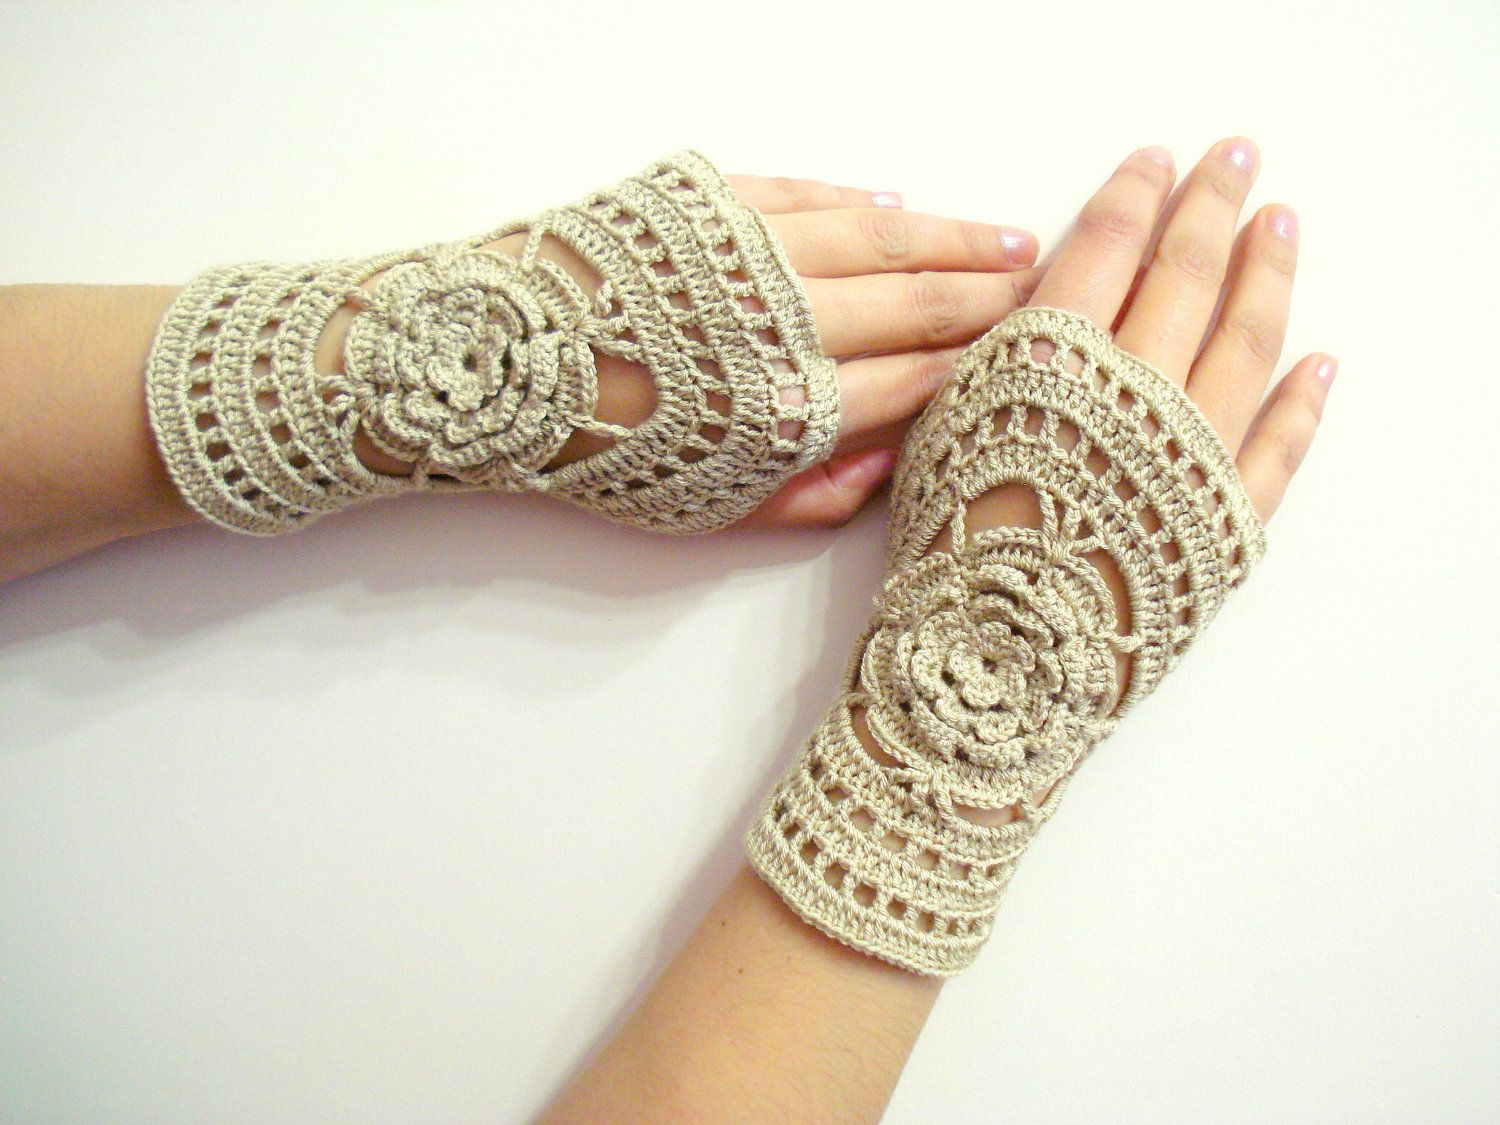 Gloves, Wrist warmer, Winter gloves, holiday gifts, 2013 fashion ...